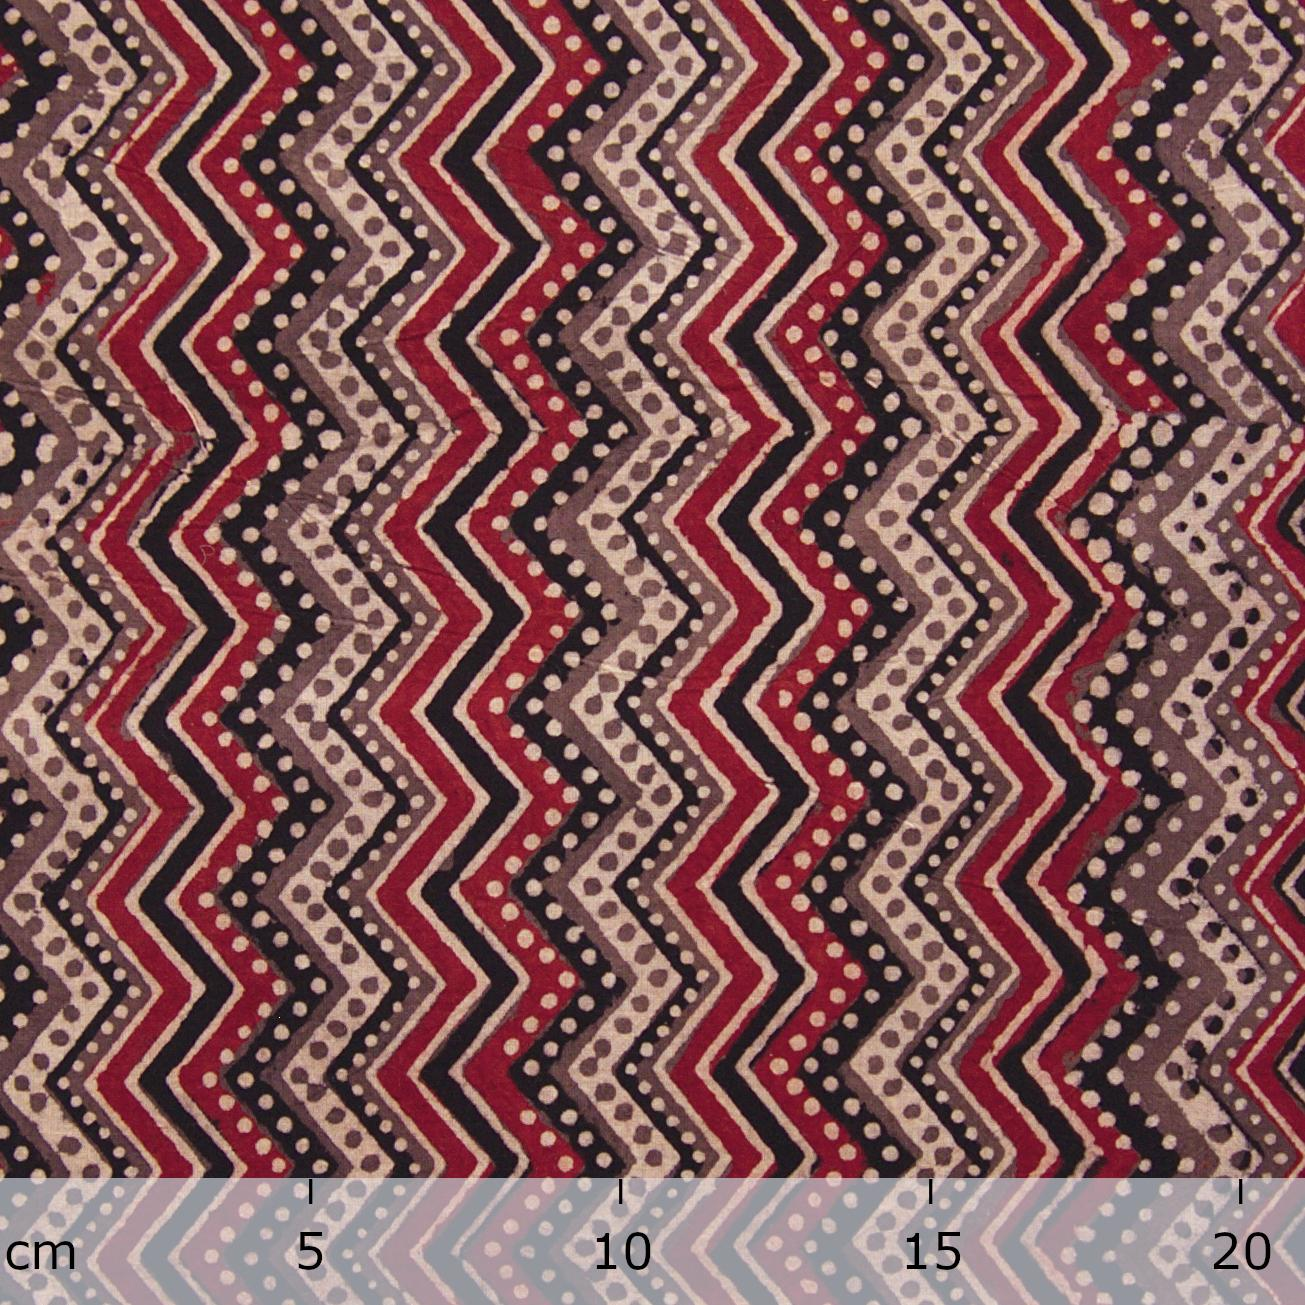 Block Printed Fabric, 100% Cotton, Ajrak Design: Beige Base, Coffee Brown, Iron Black, Madder Red ZigZag. Ruler